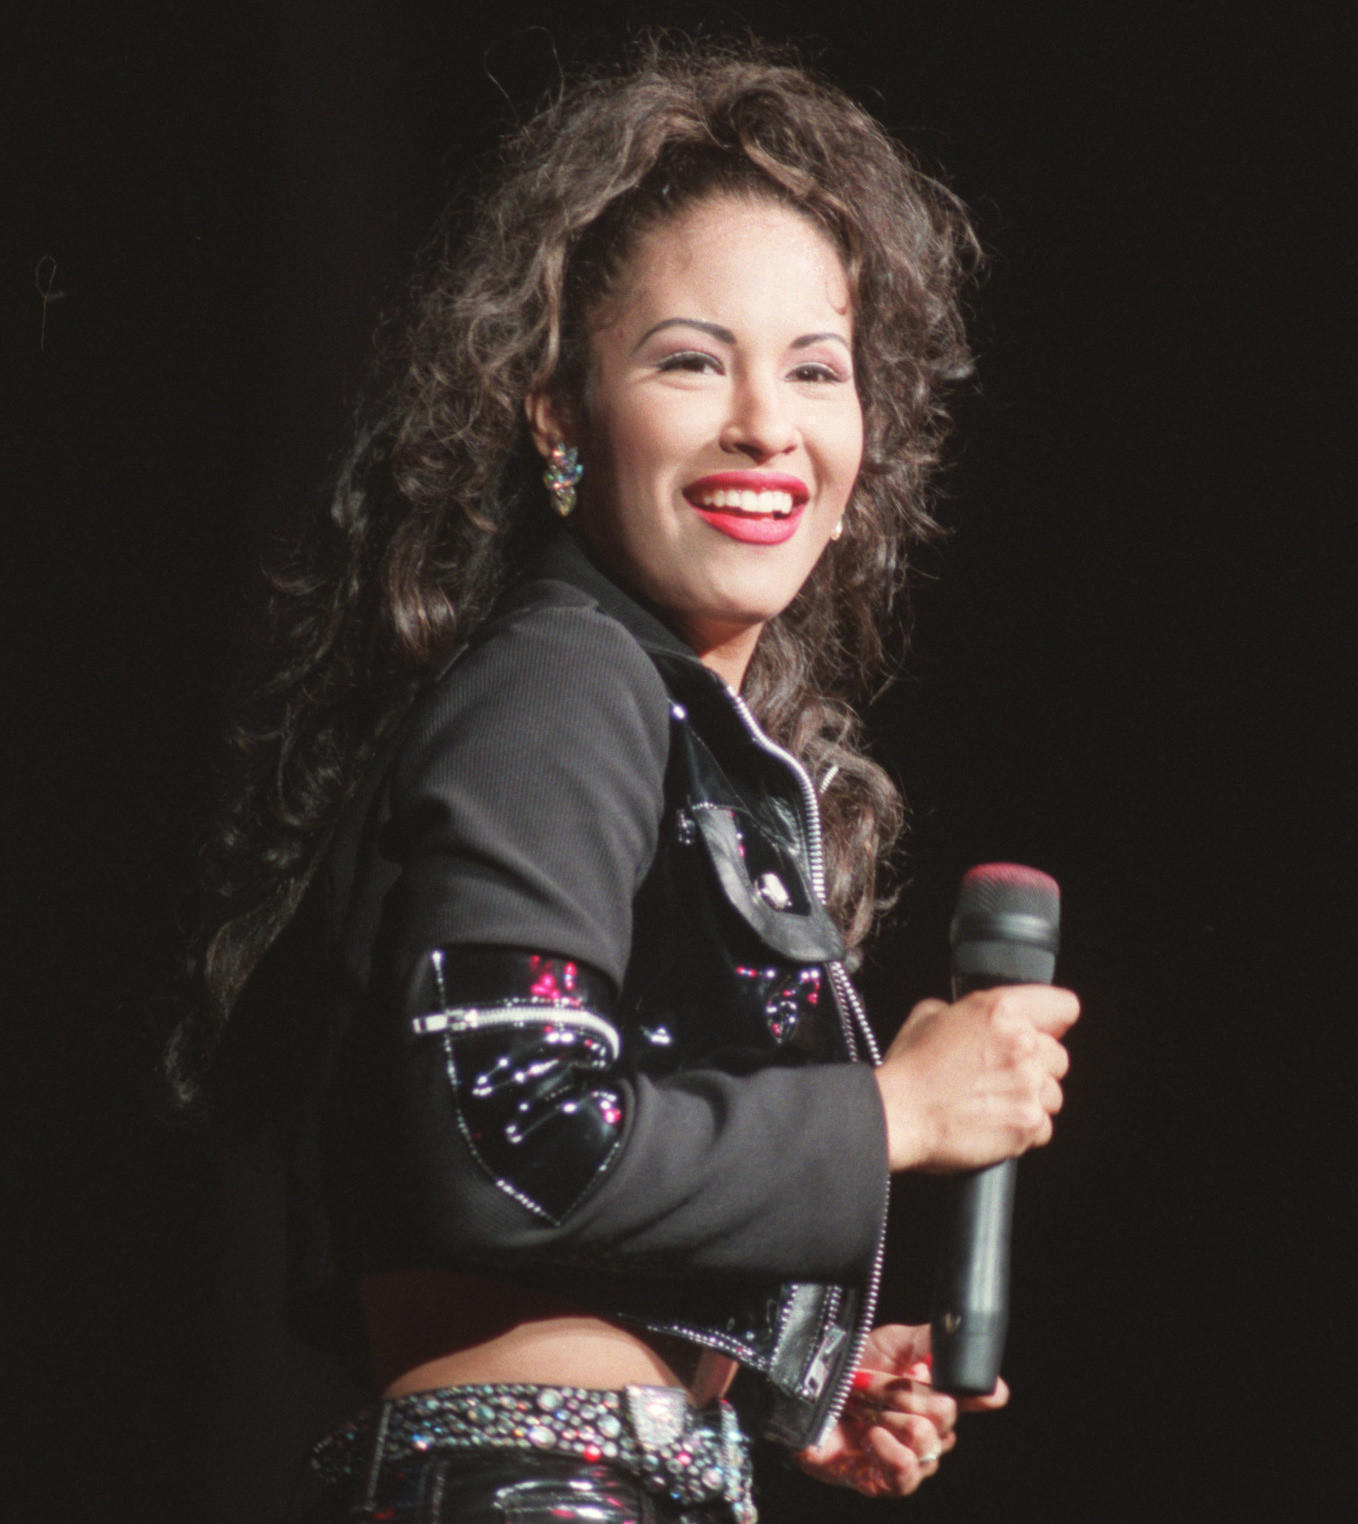 Tejano star Selena will receive a star on Hollywood's Walk of Fame 21 years after her death